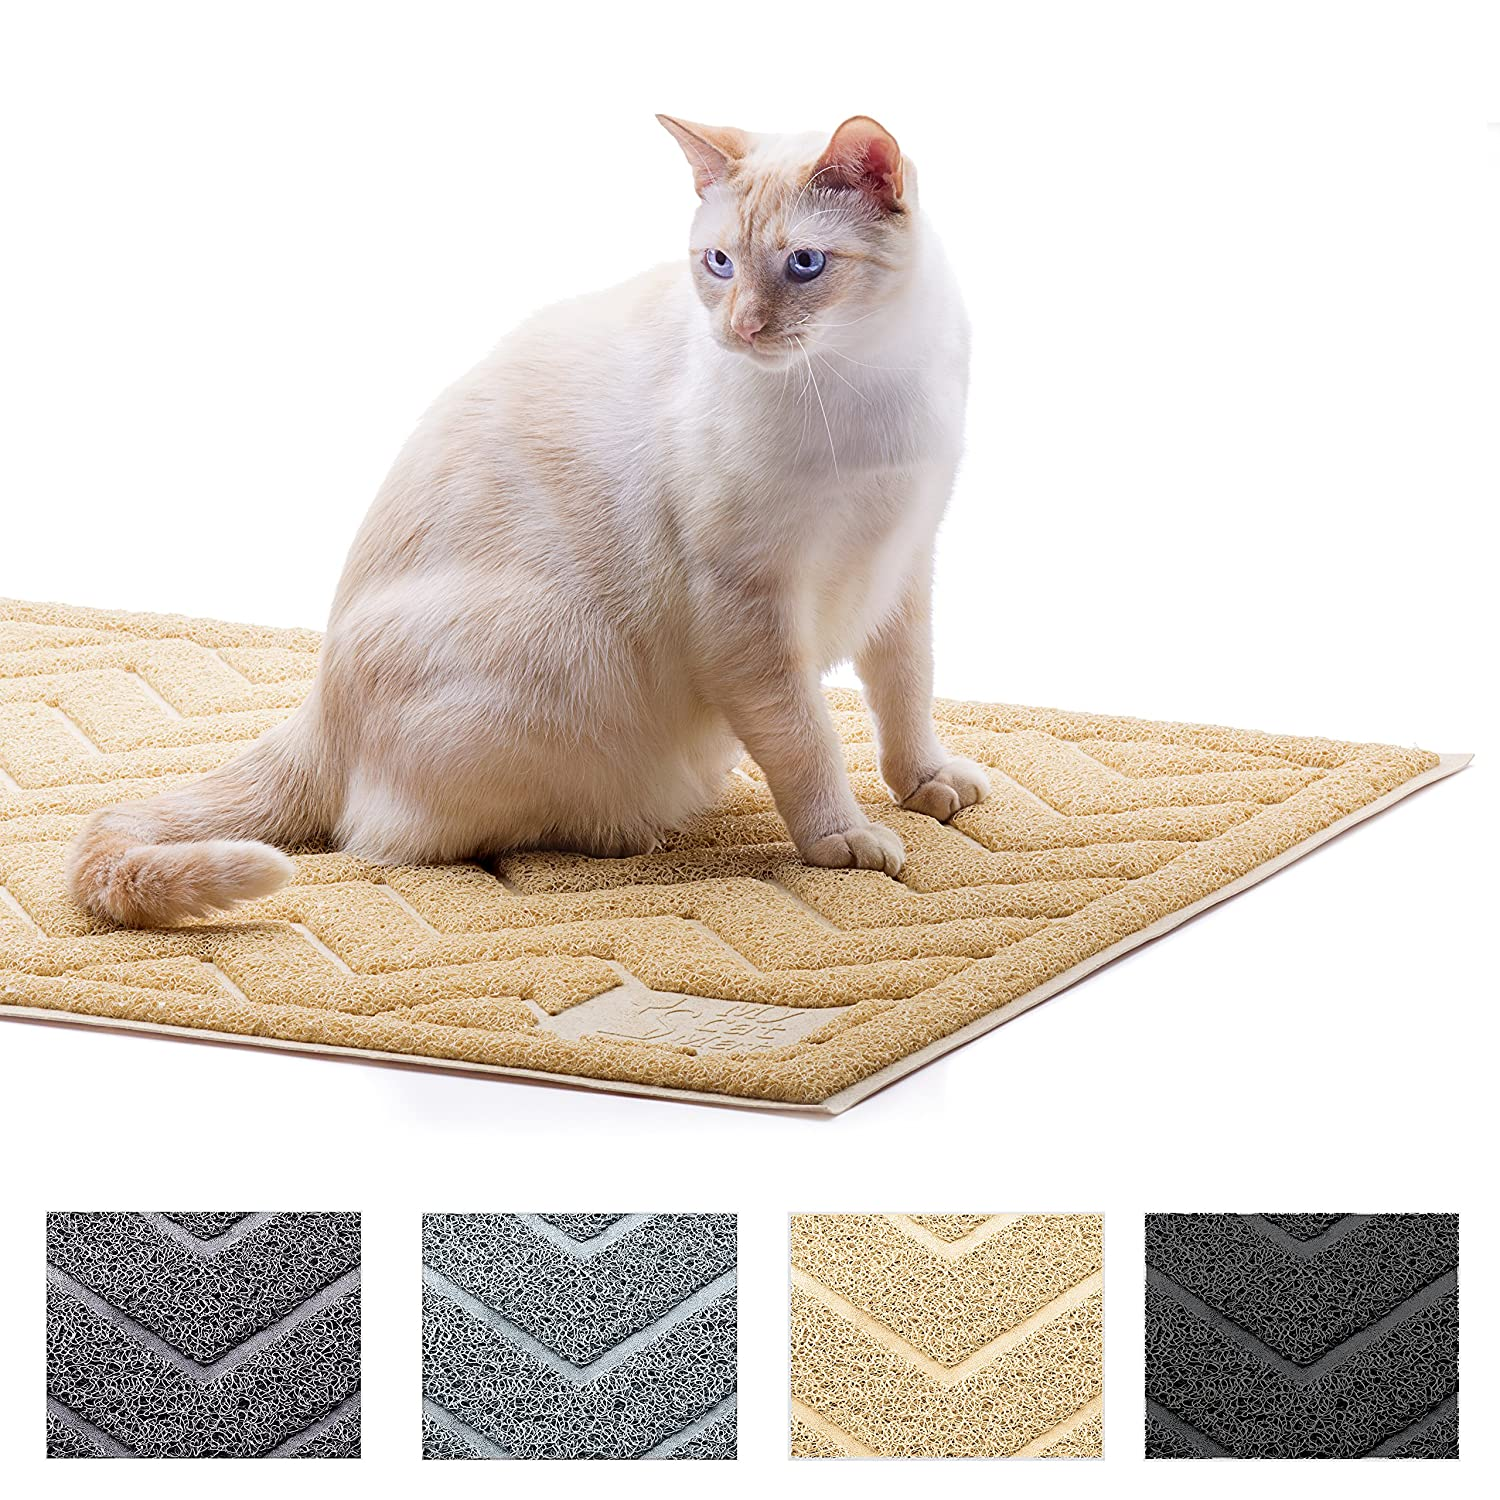 My Cat Mat Cat Litter Mat Traps and Controls Kitty Litter Scatter Large XL Size for Tracking and Trapping Scat from Litter Box Best Easy Clean Catching and Trapper Rug Soft on Paws